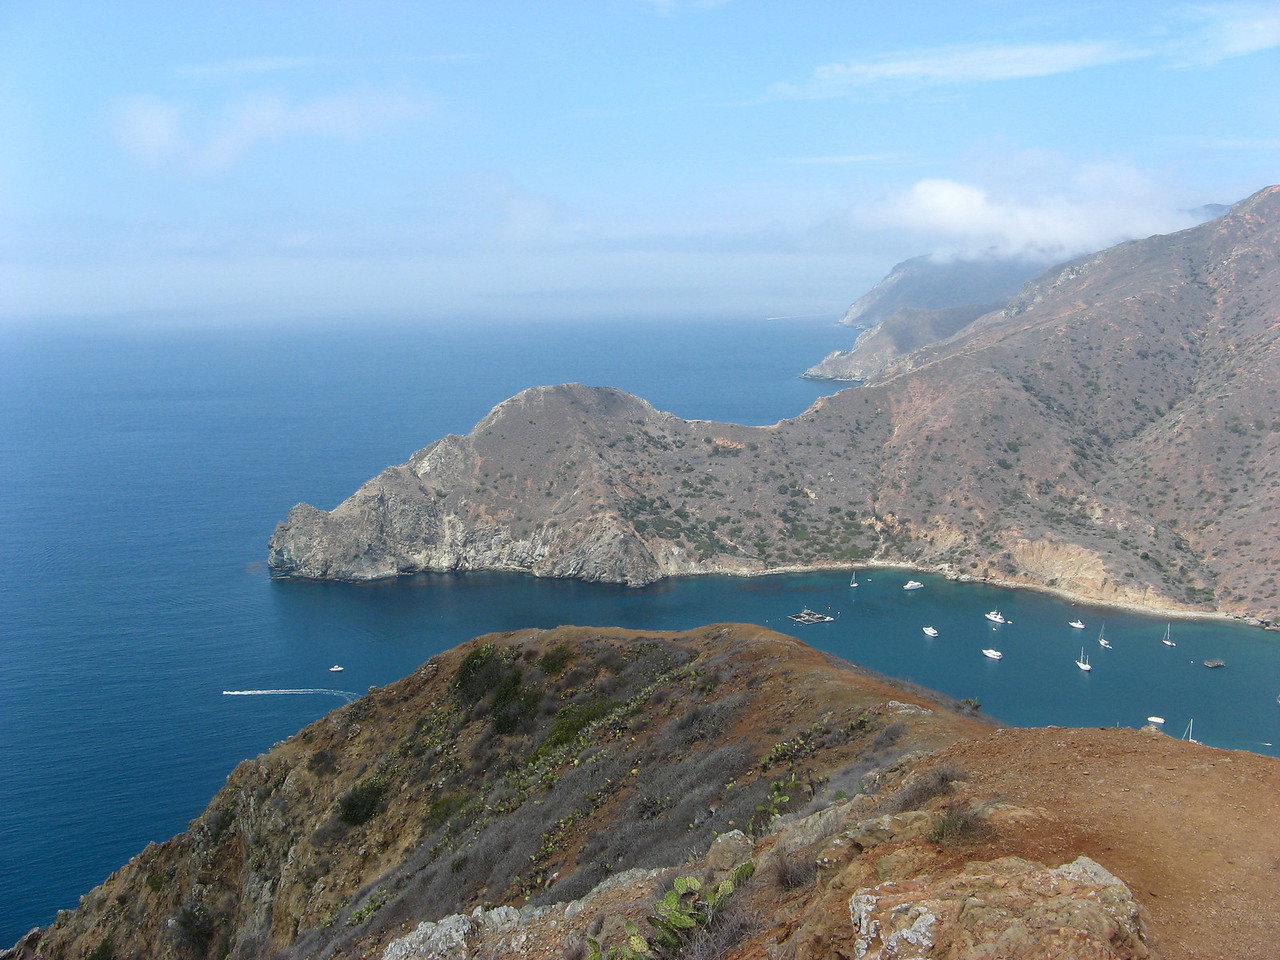 Looking towards the west end of Catalina Island, California from above Catalina Harbor. Taken on Aug. 25, 2007 with a Canon A700 point and shoot.